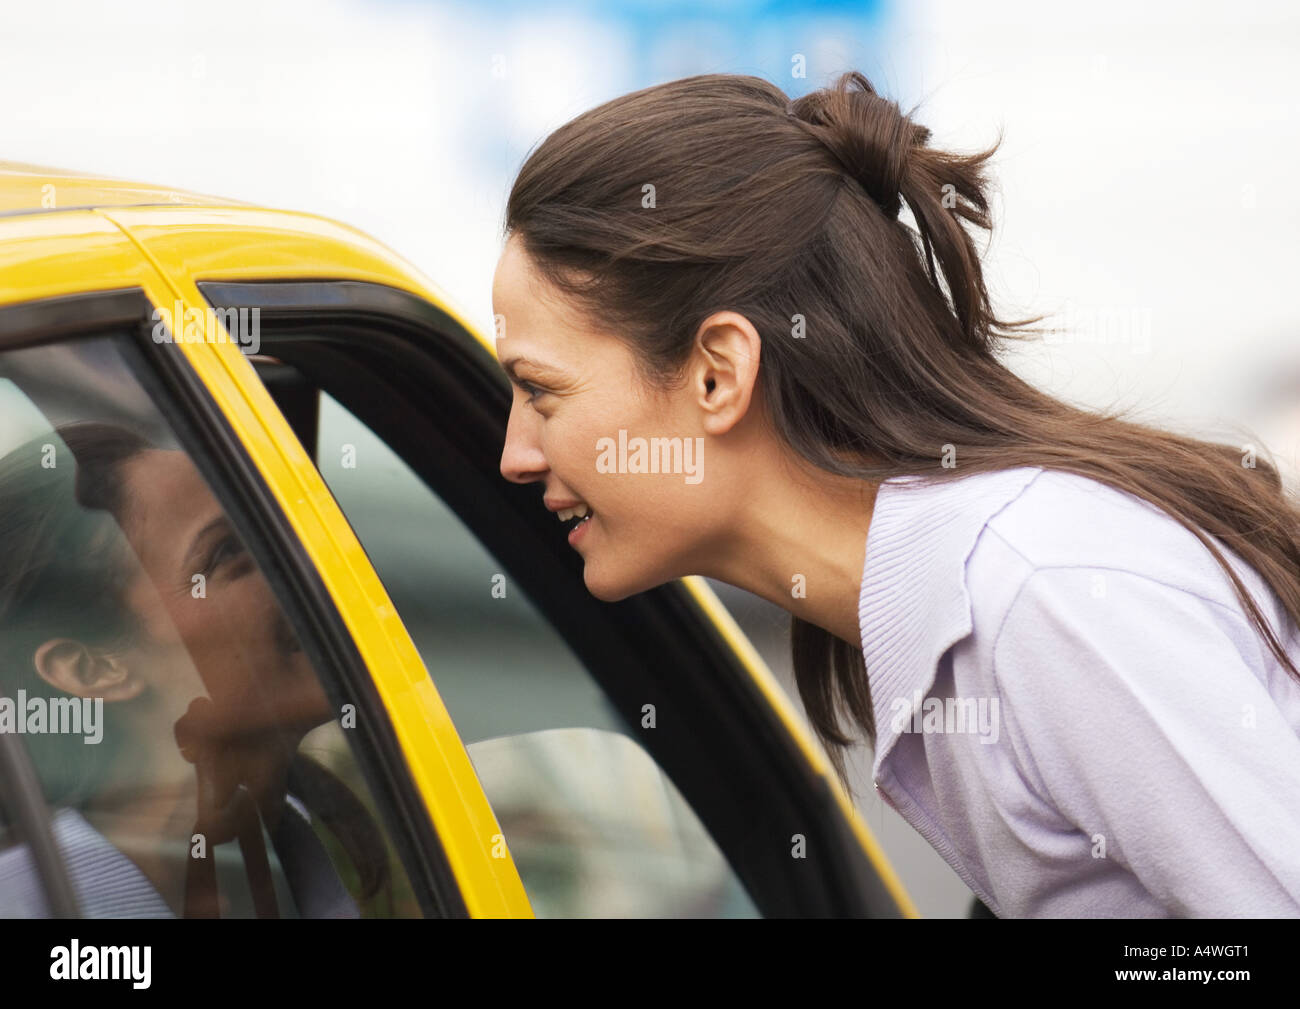 Young woman leaning toward taxi, speaking - Stock Image